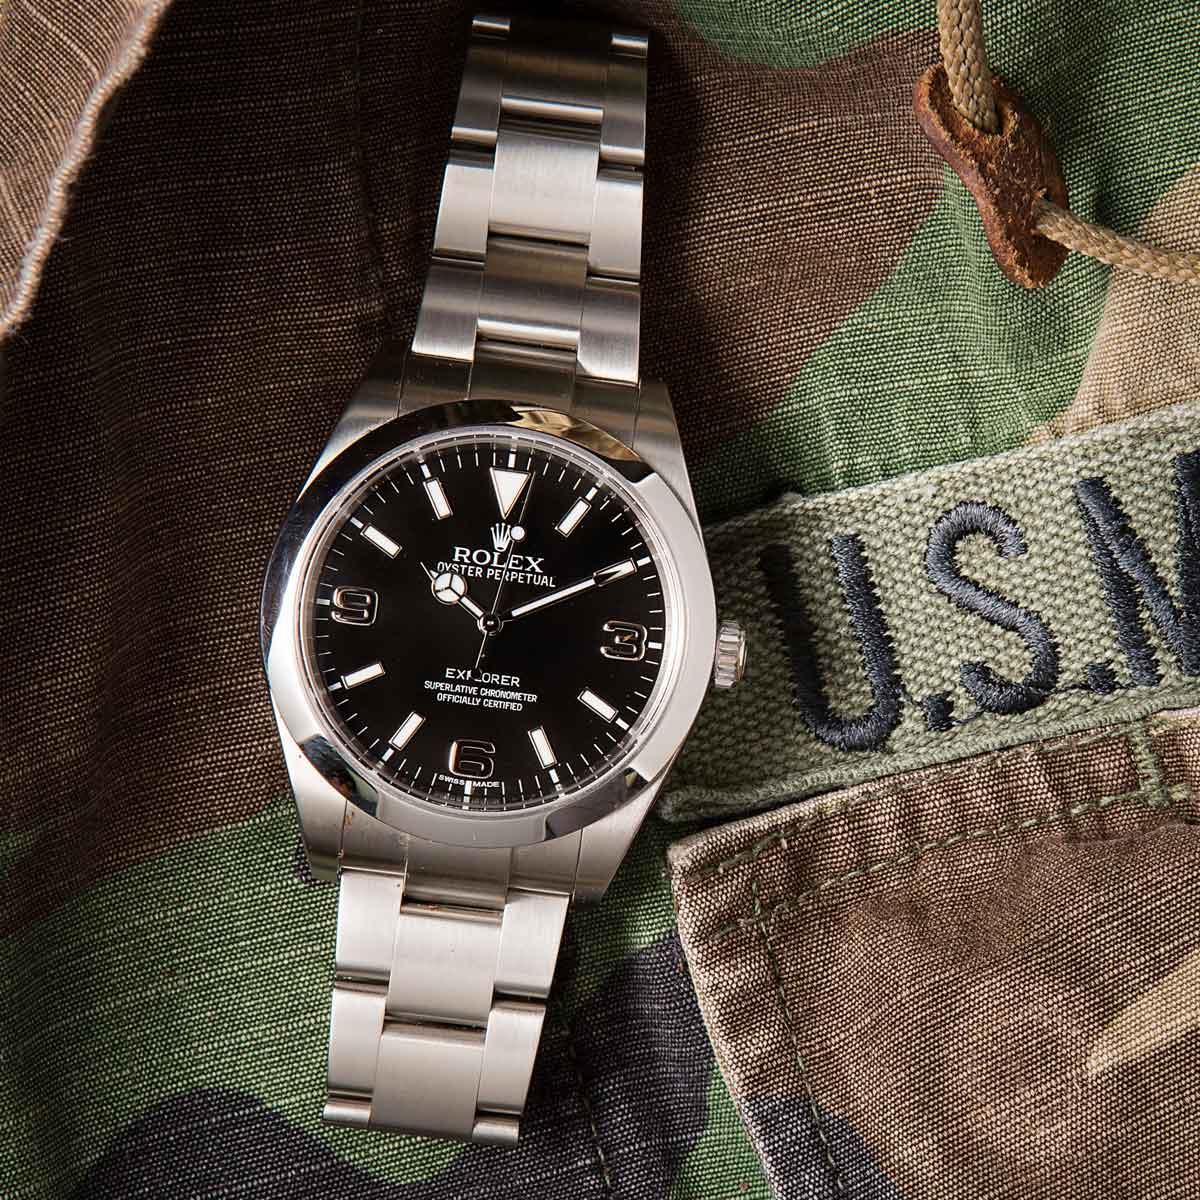 Rolex Military Watches